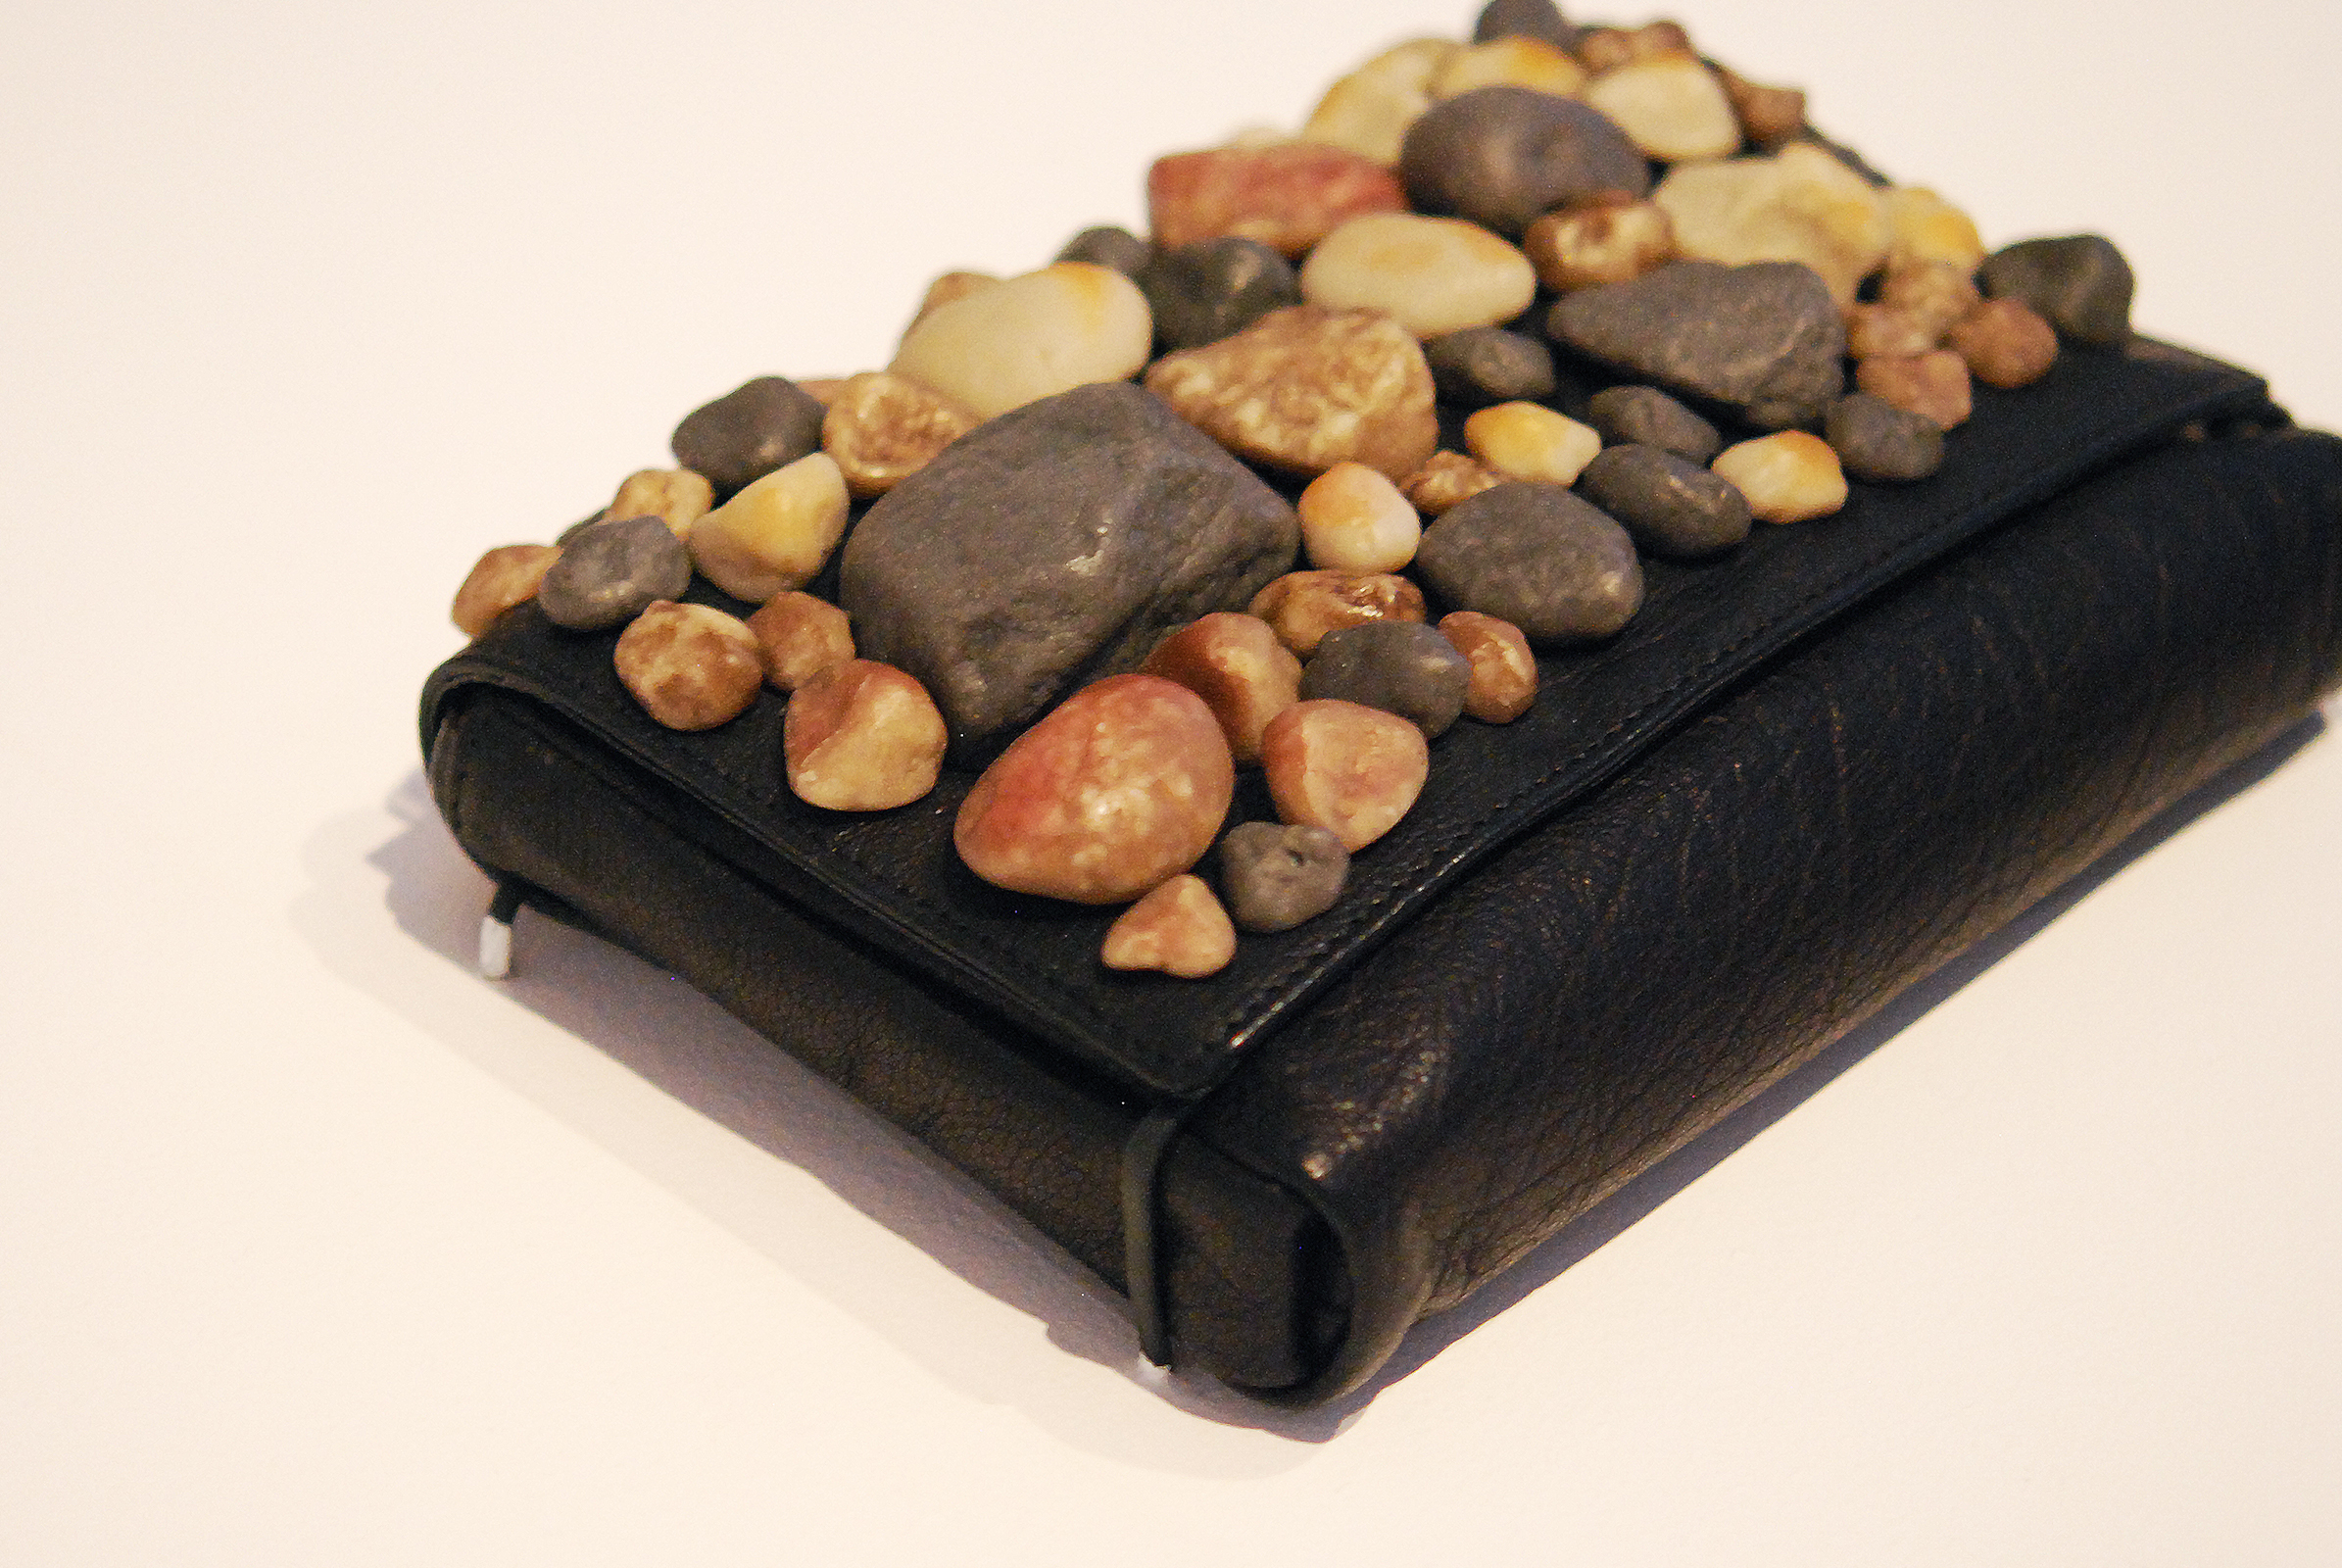 Leather clutch with resin rocks, Fall 2010